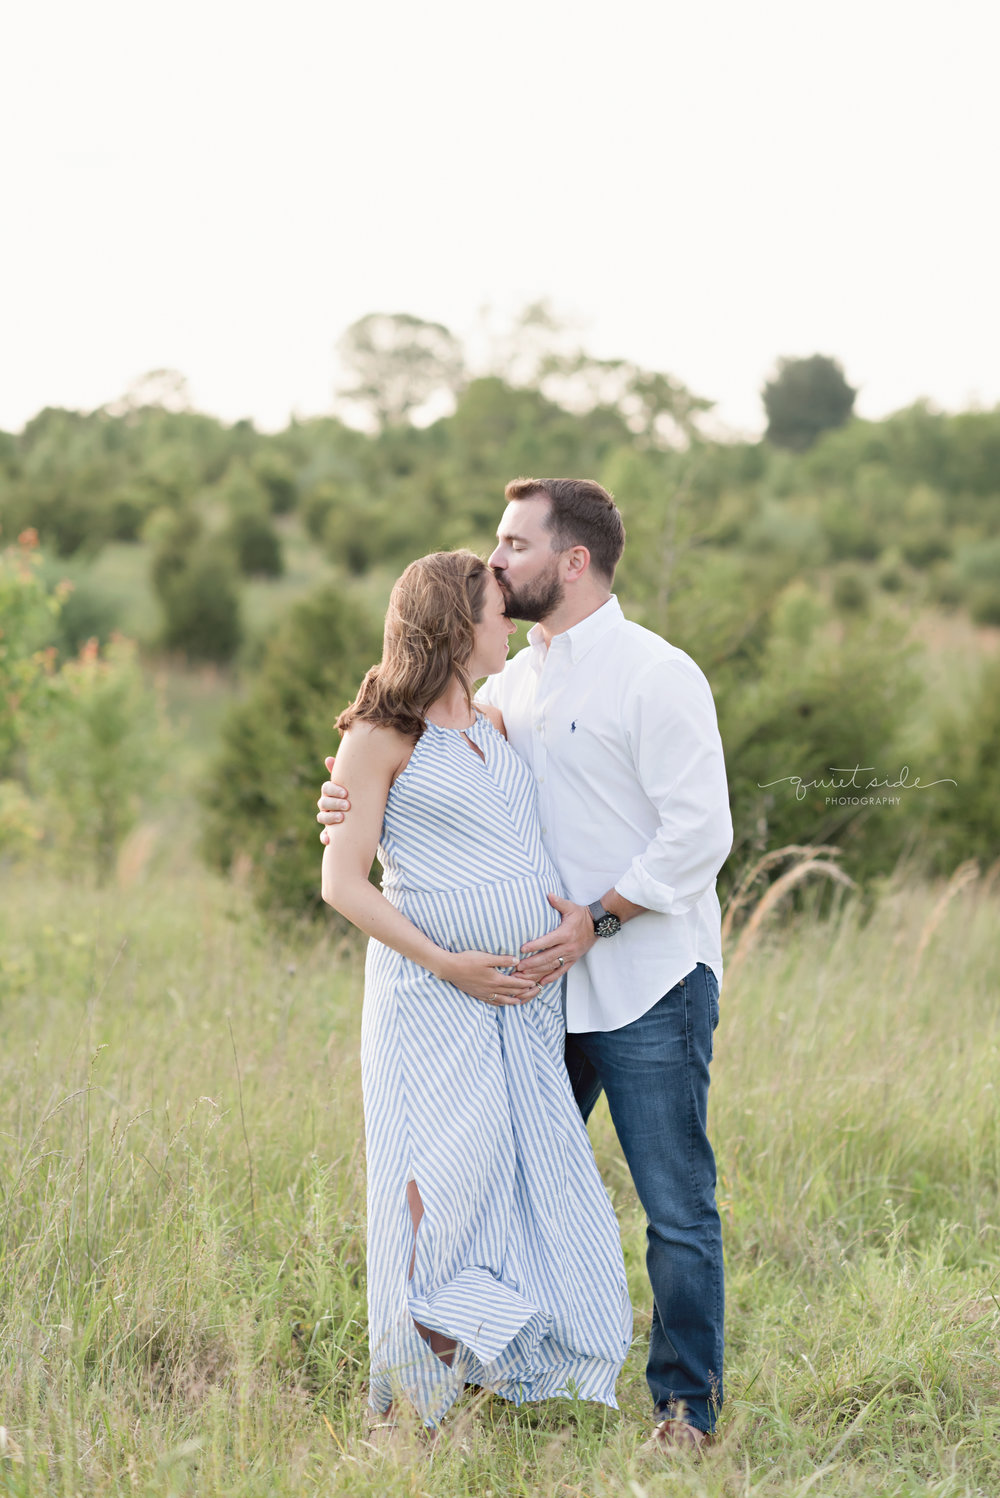 NorthernVirginia-Maternity-Sunset-Outdoor-GoldenHour-QuietSidePhotography-170514_QuietSidePhotography_BlazicMaternity_May2017_4800.jpg